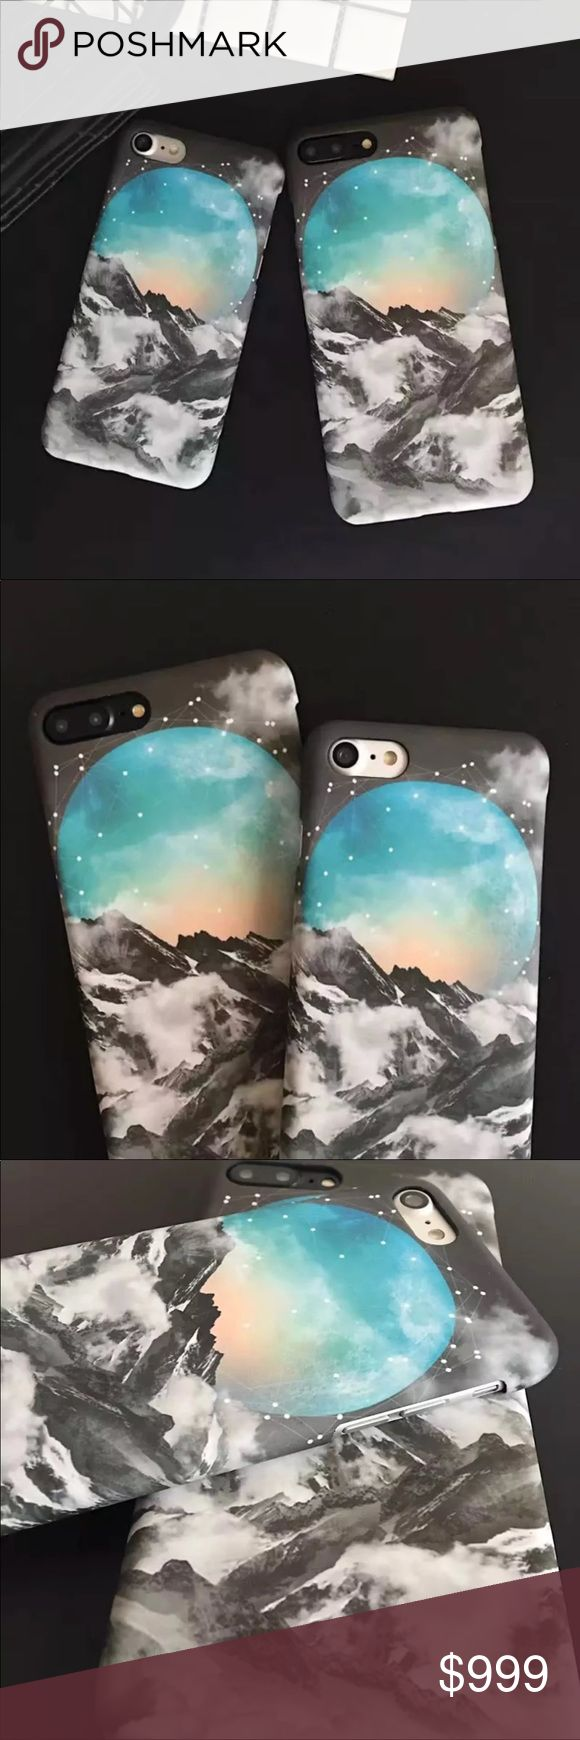 COMING SOON iPhone 7+/8+ Mountain Moon Hard Case **COMING SOON - LIKE THIS LISTING TO BE NOTIFIED**  ▪️New In Package , 7 Plus/8 Plus  ▪️Sturdy Hard PC, Matte Print With Soft Velvety Finish    ▪️Same or Next Business Day Shipping Accessories Phone Cases